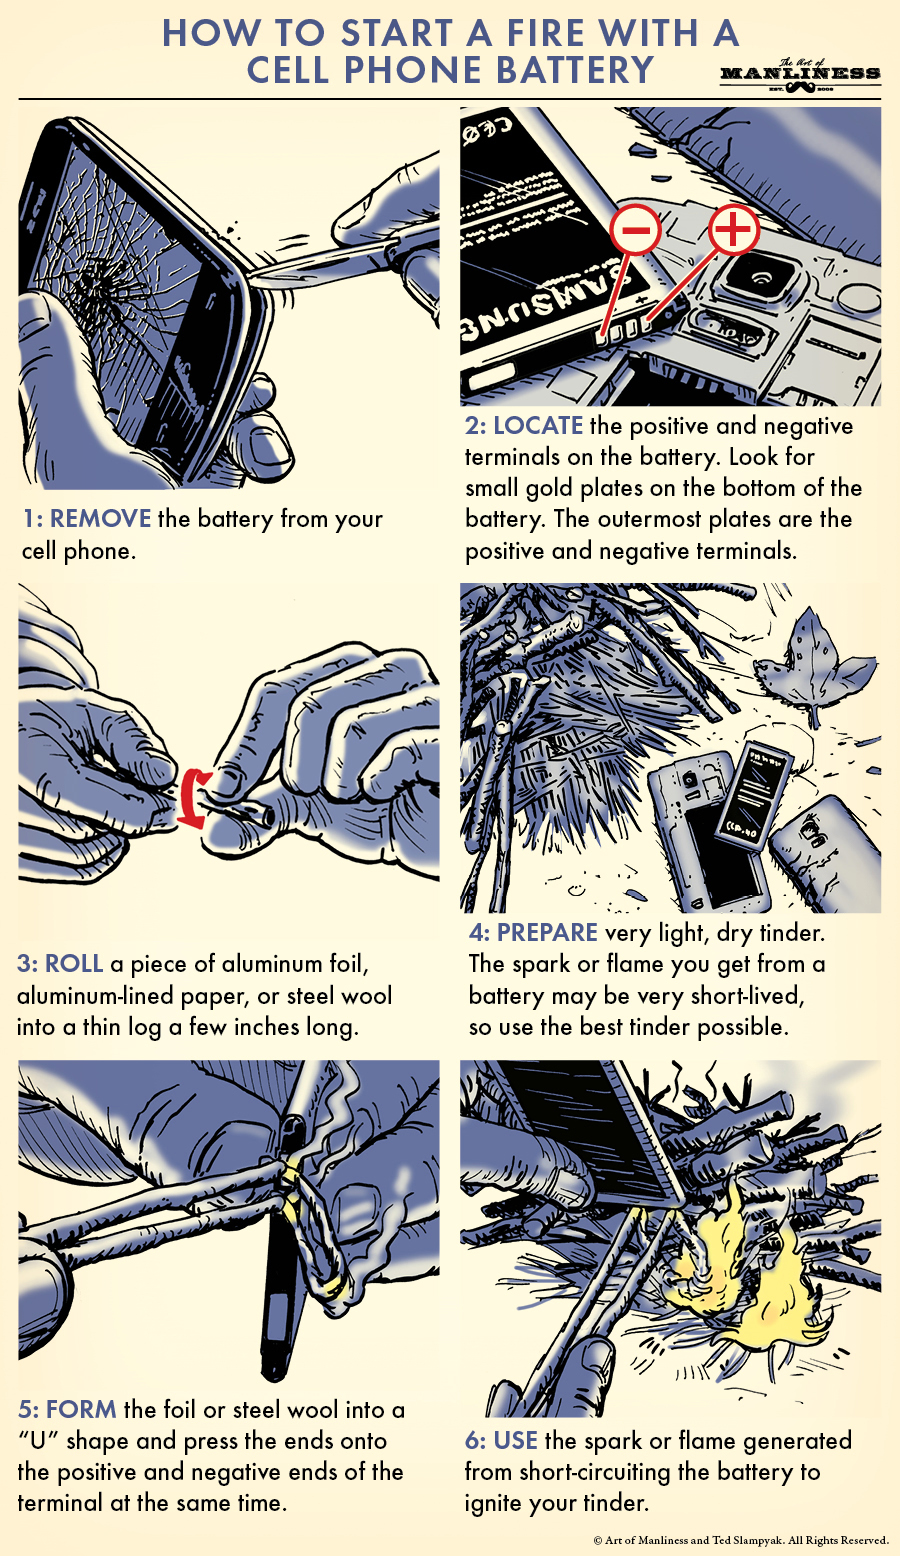 Procedure to start a fire with a cell phone battery illustration.